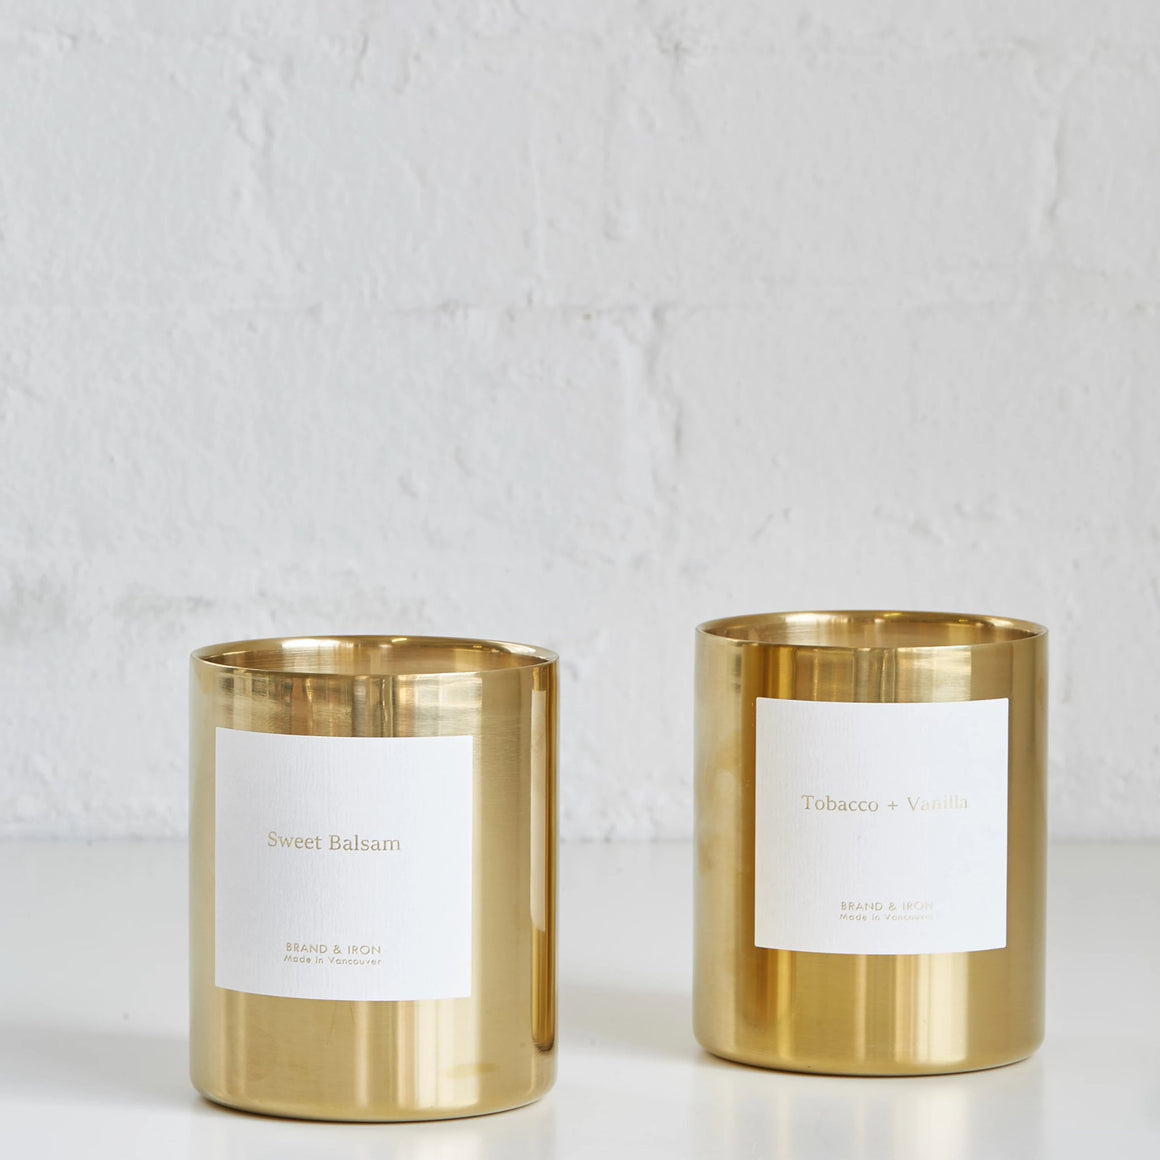 Tobacco + Vanilla Candle by Brand & Iron